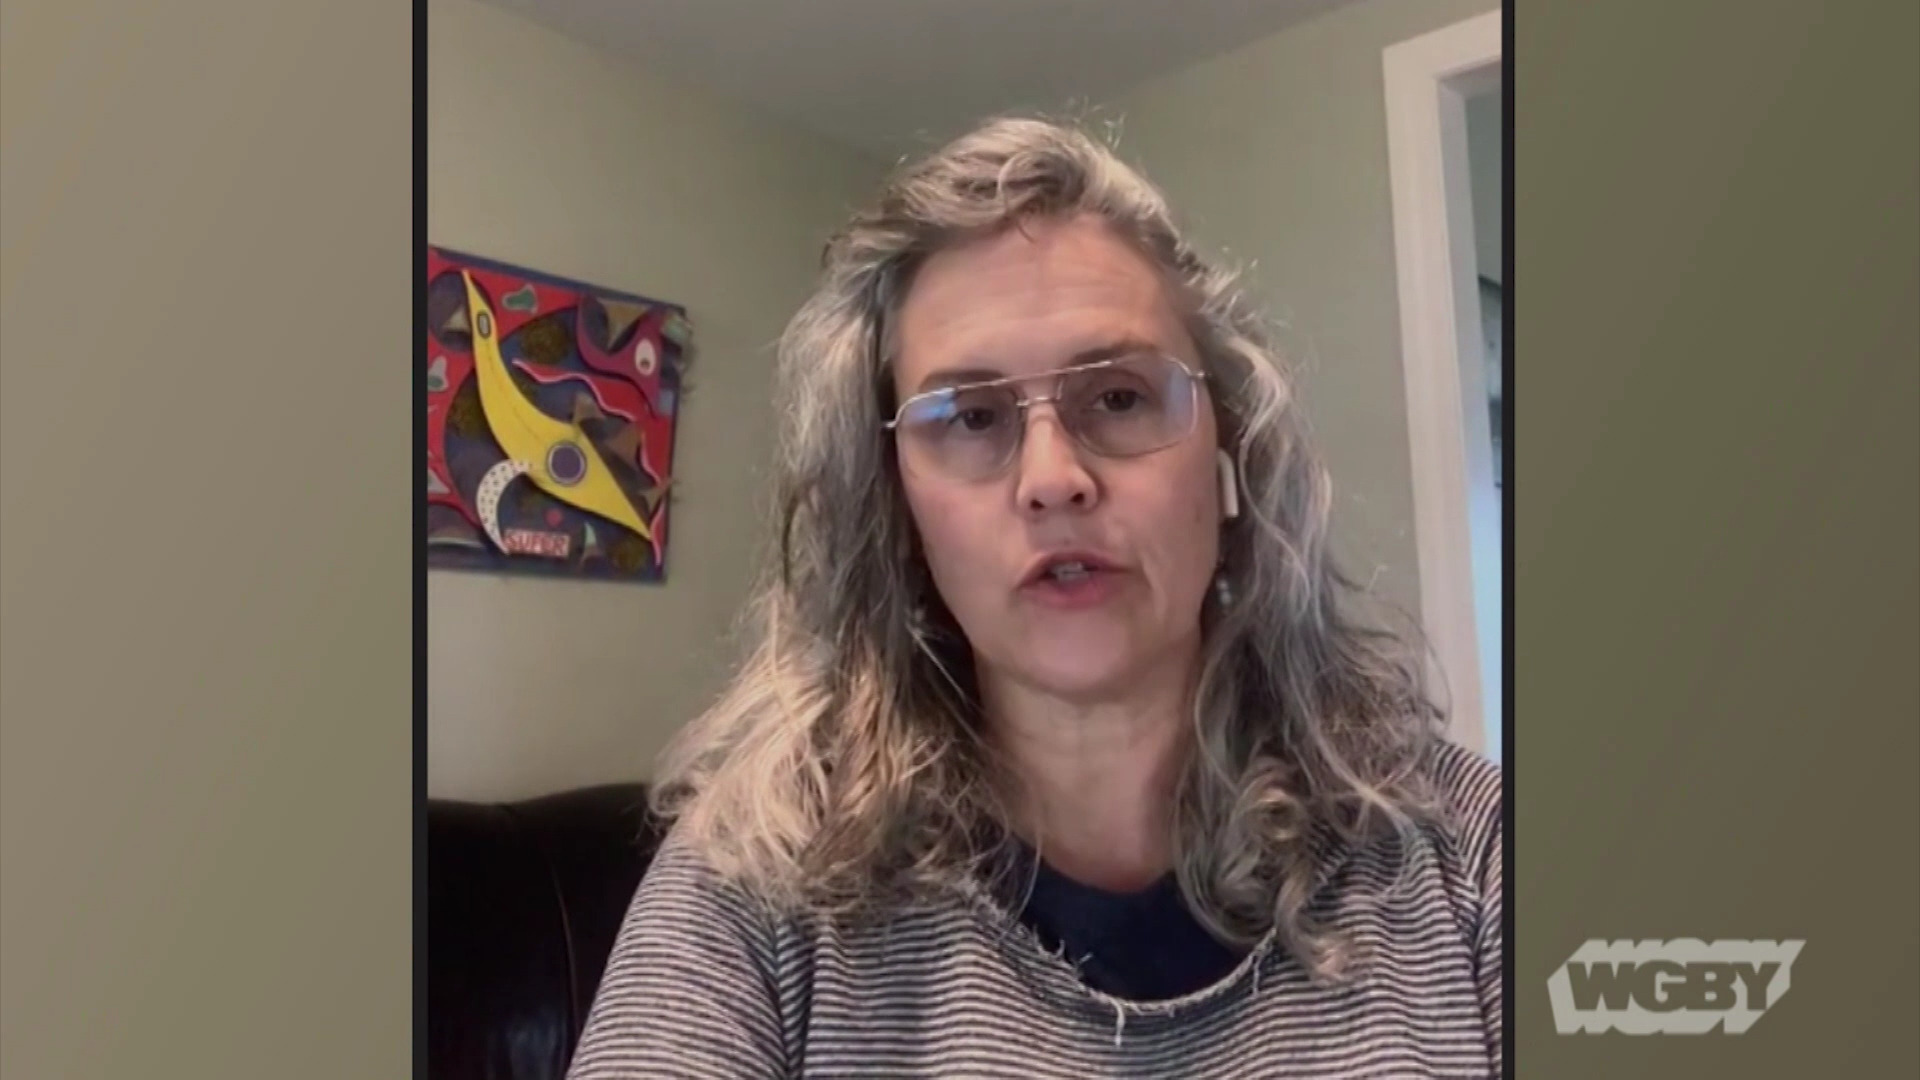 WATCH: Easthampton Mayor & Mass. COVID-19 Reopening Advisory Board member Nicole LaChapelle gives an update on the process to reopen the economy.